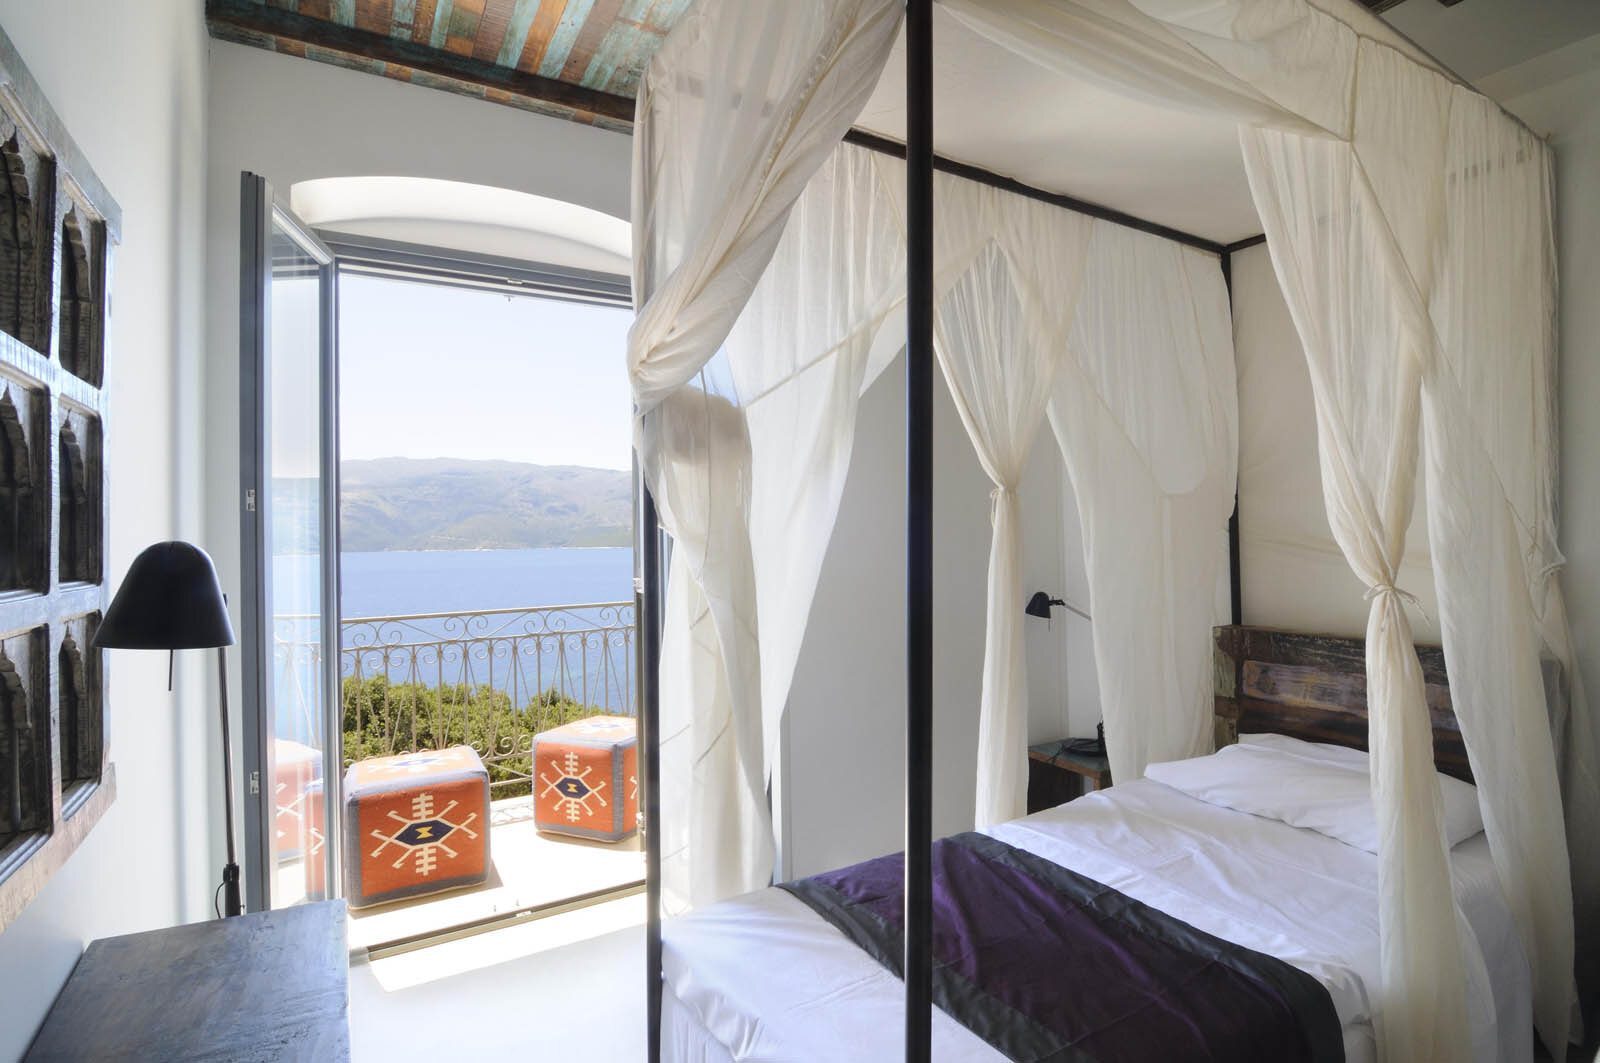 7 nights accommodation - in our stunningly beautiful, luxurious Greek villa and elegant yurts built into the hills with views of the Ionian sea.